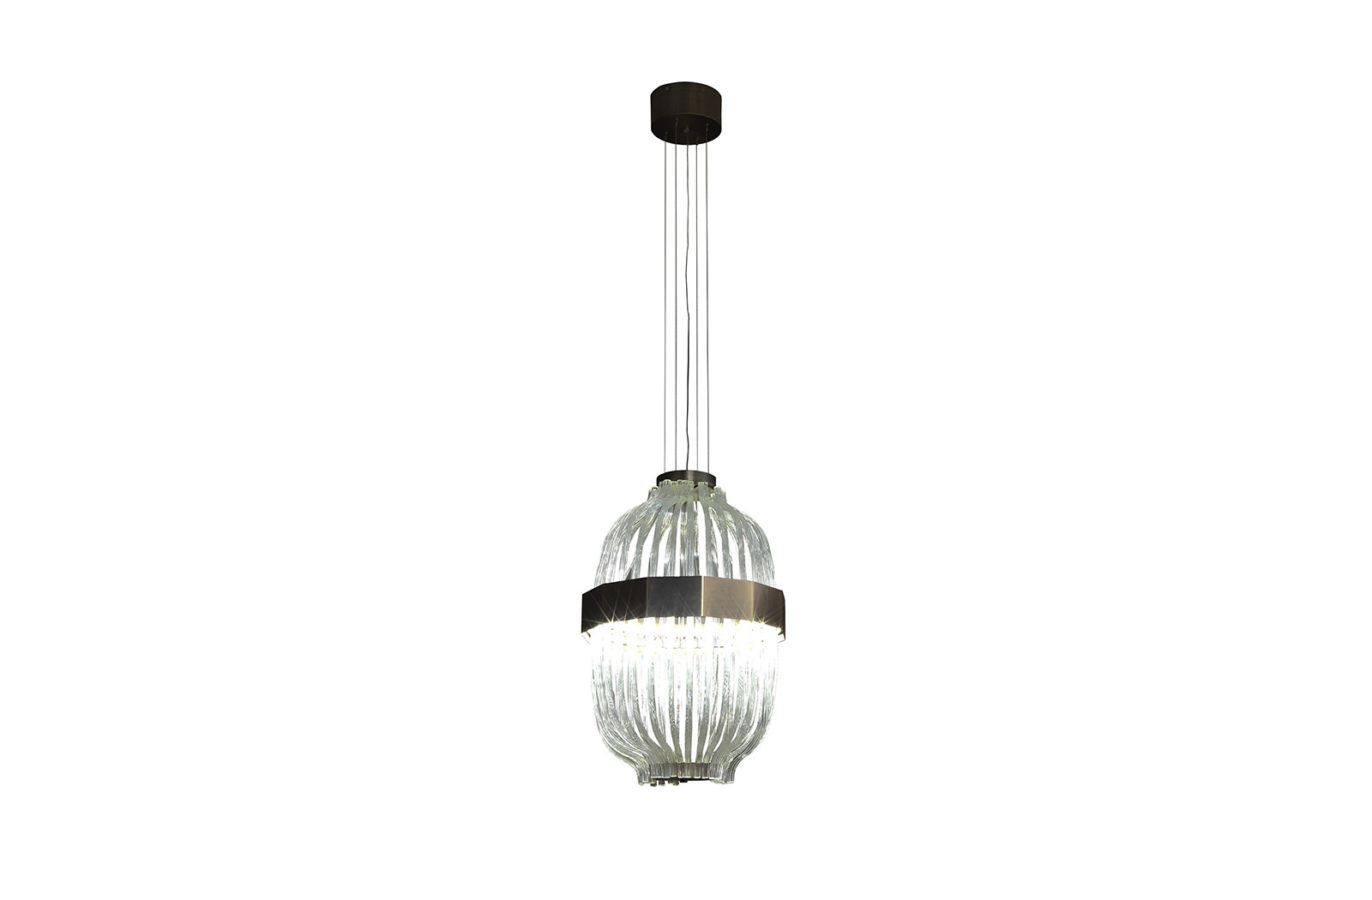 Wicker Suspension Lamp 2